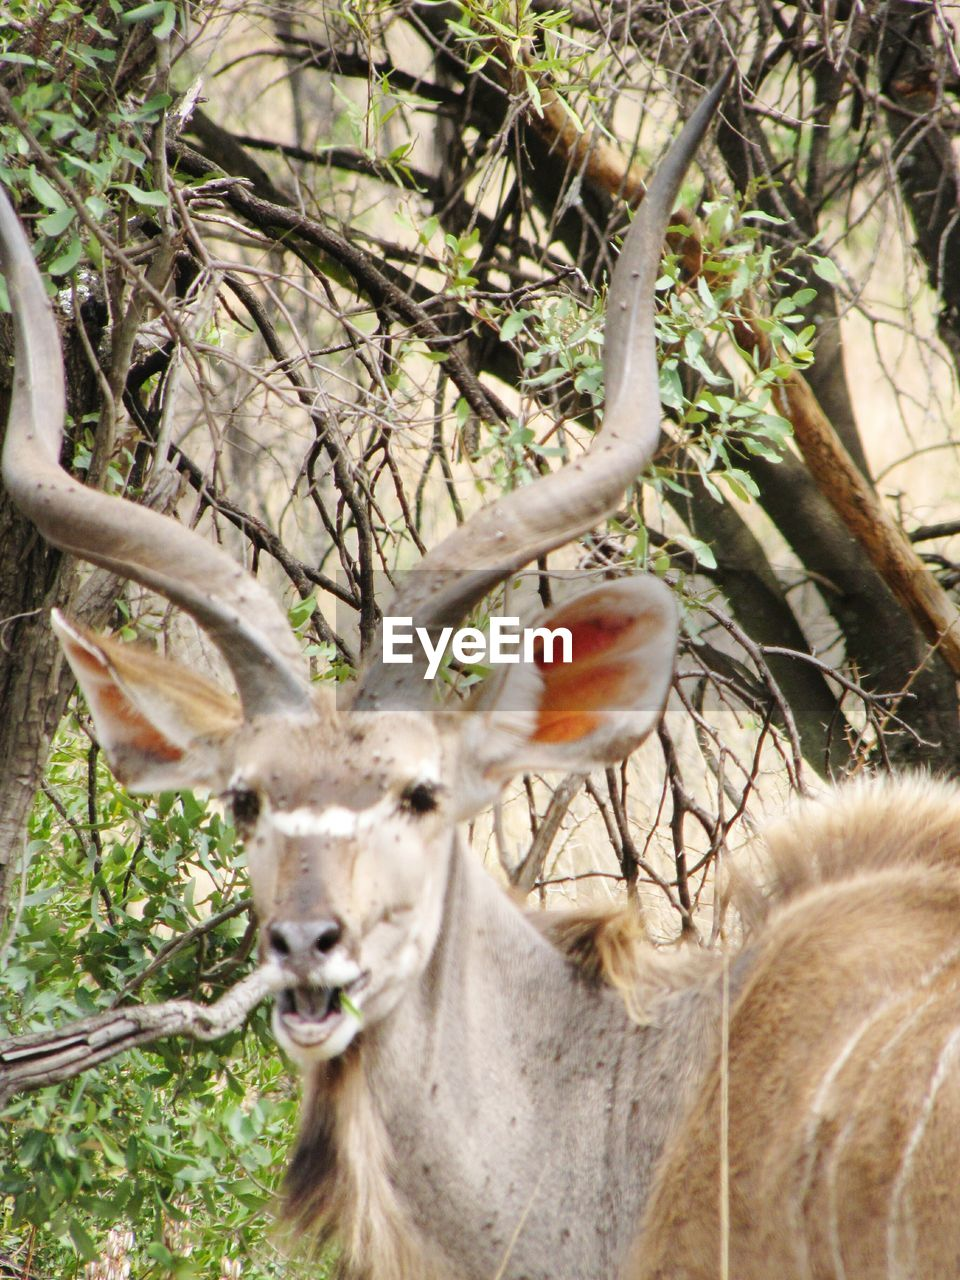 animal themes, tree, one animal, branch, day, no people, antler, mammal, animals in the wild, outdoors, nature, domestic animals, close-up